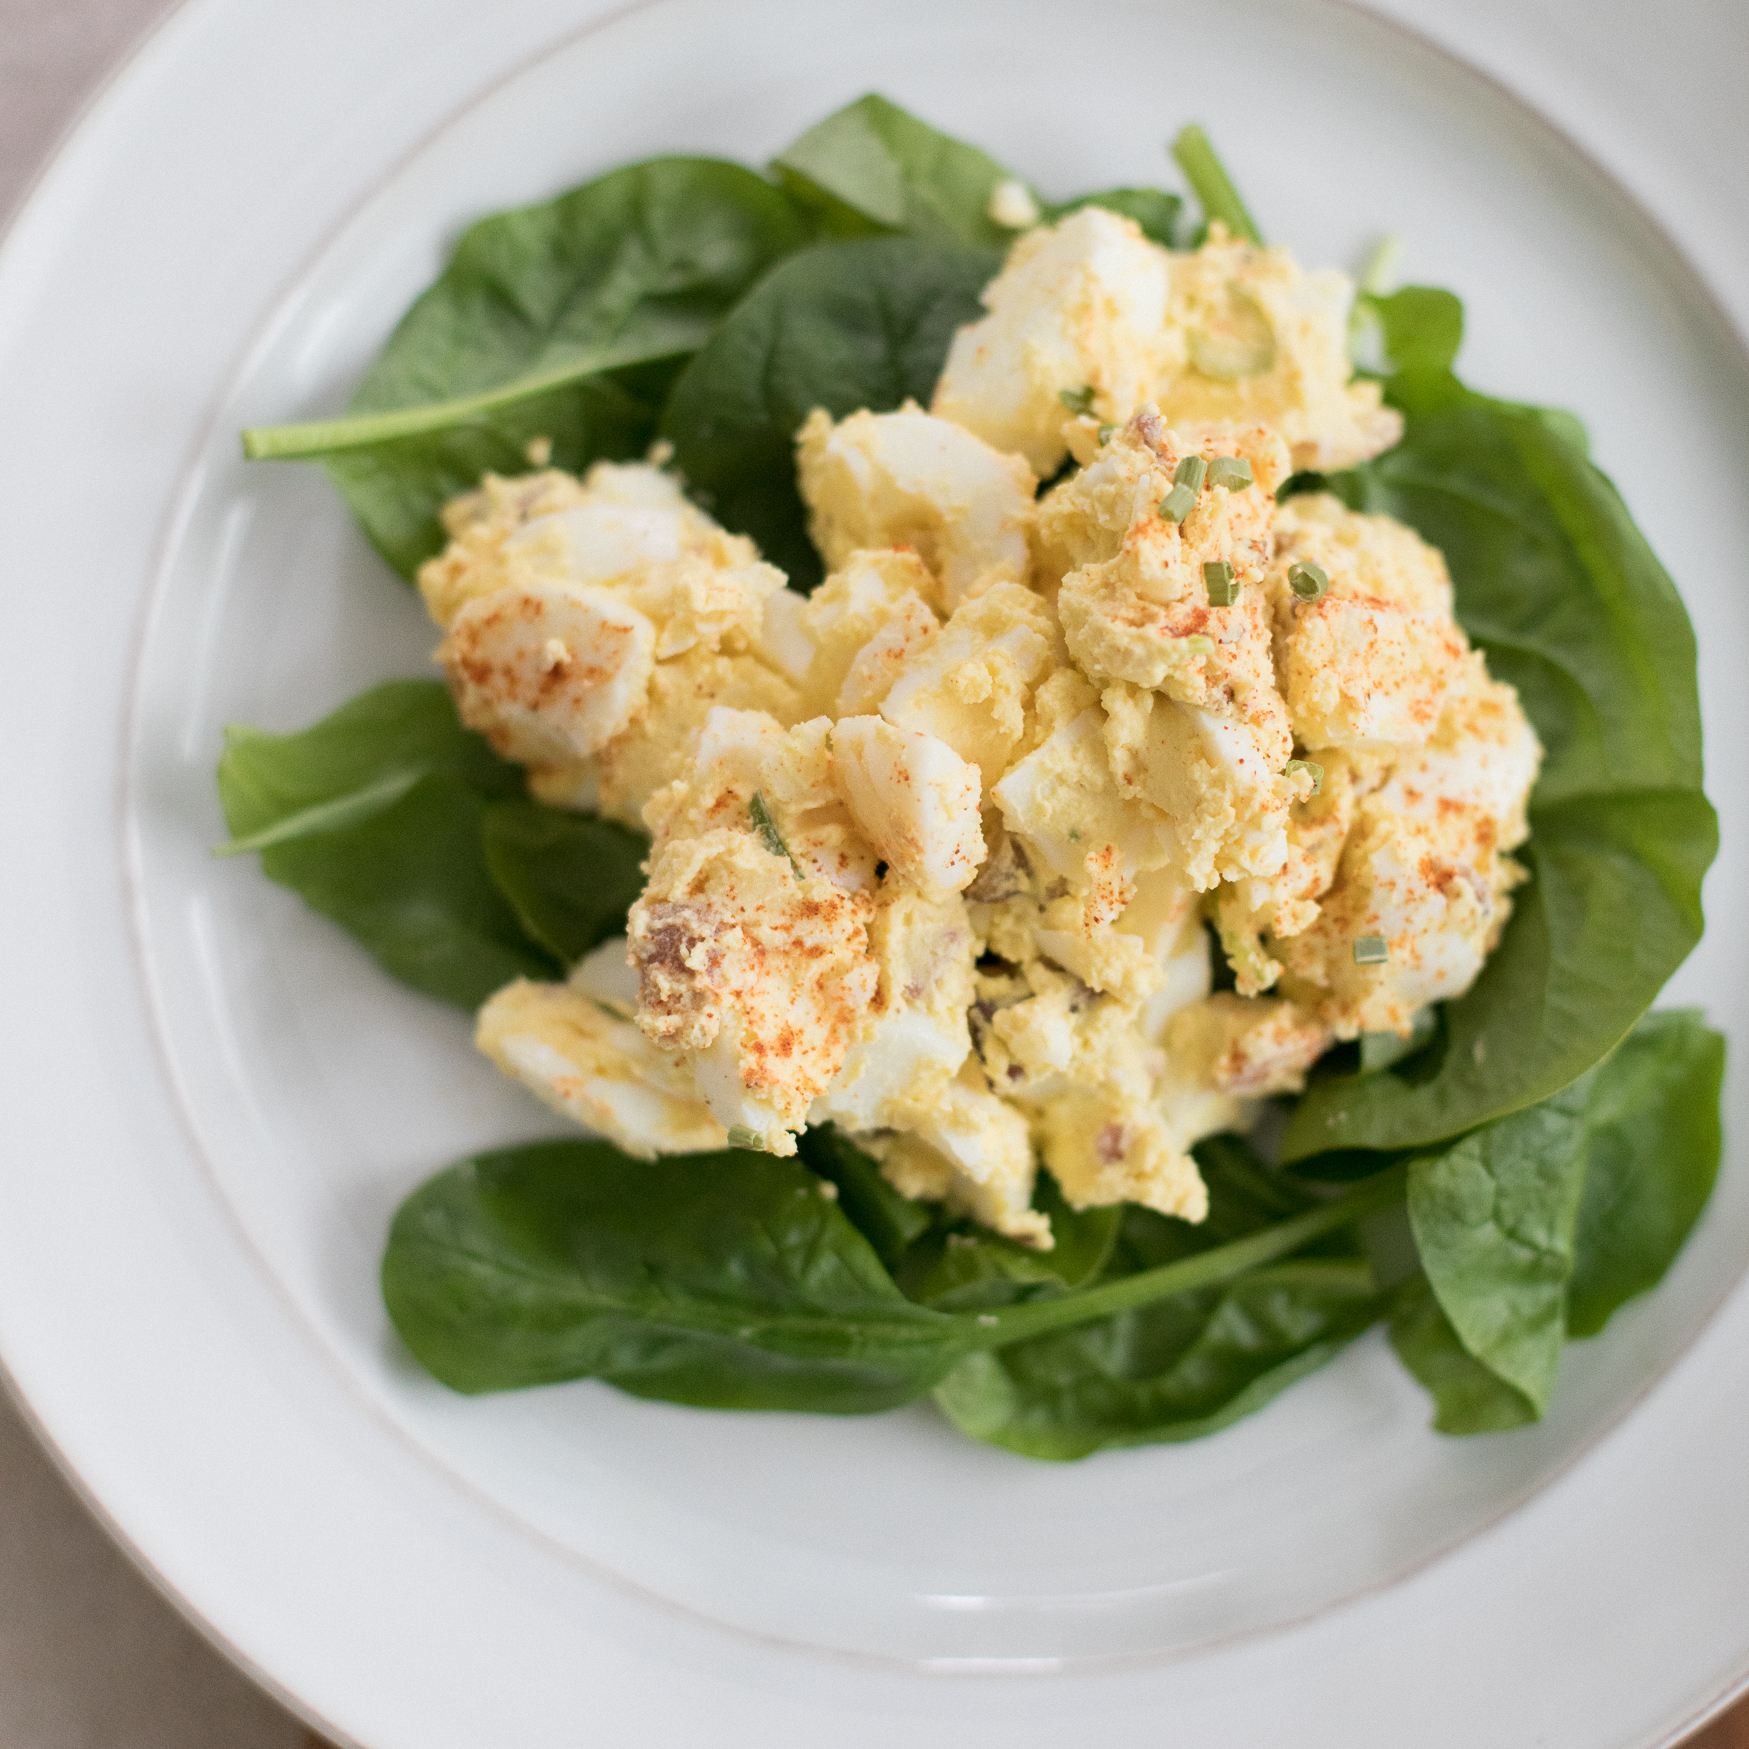 Neeleys-Bulk-Egg-Salad-on-Spinach.jpg